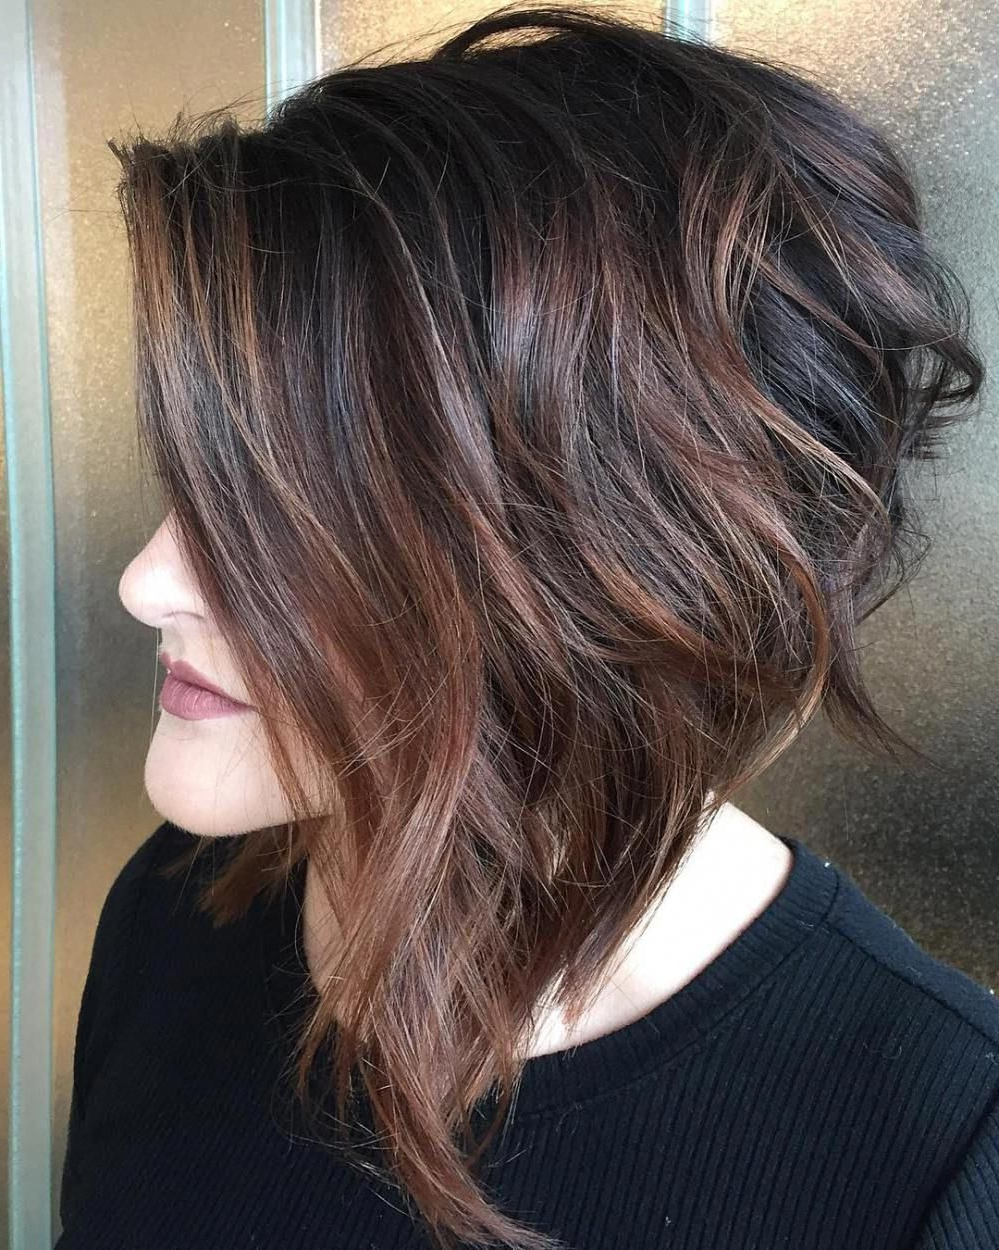 These Wavy Bob Hairstyles Truly Are Trendy Within Well Liked Sassy Wavy Bob Hairstyles (View 3 of 20)